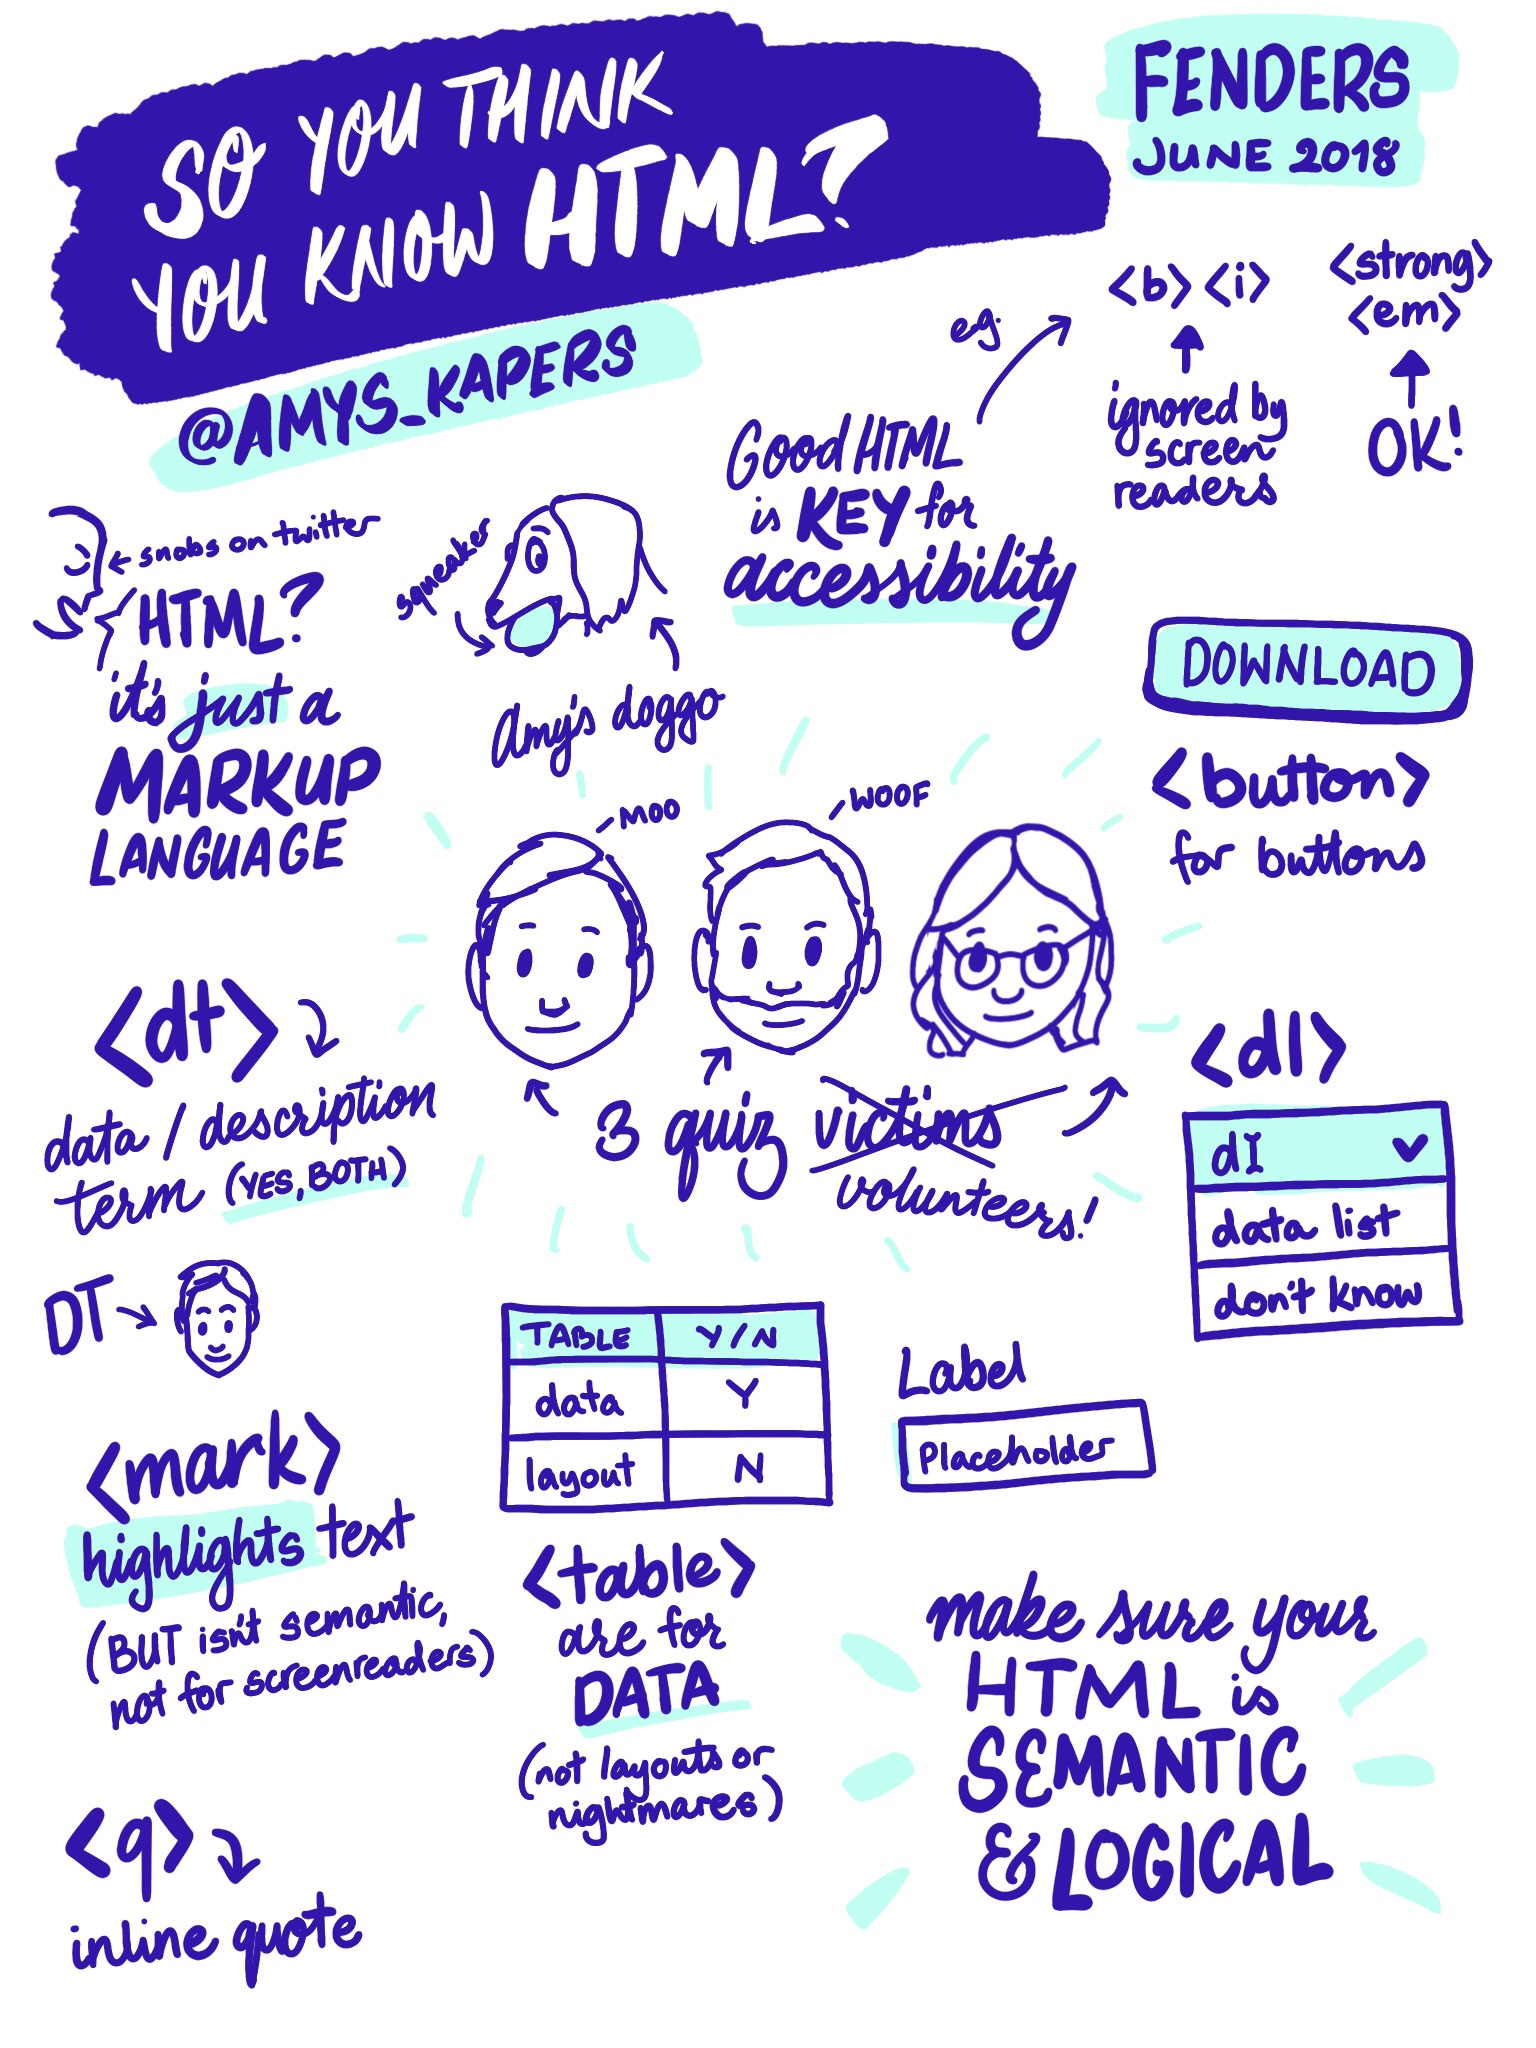 """Sketchnote of """"So you think you know HTML?"""" By Amy Kapernick"""